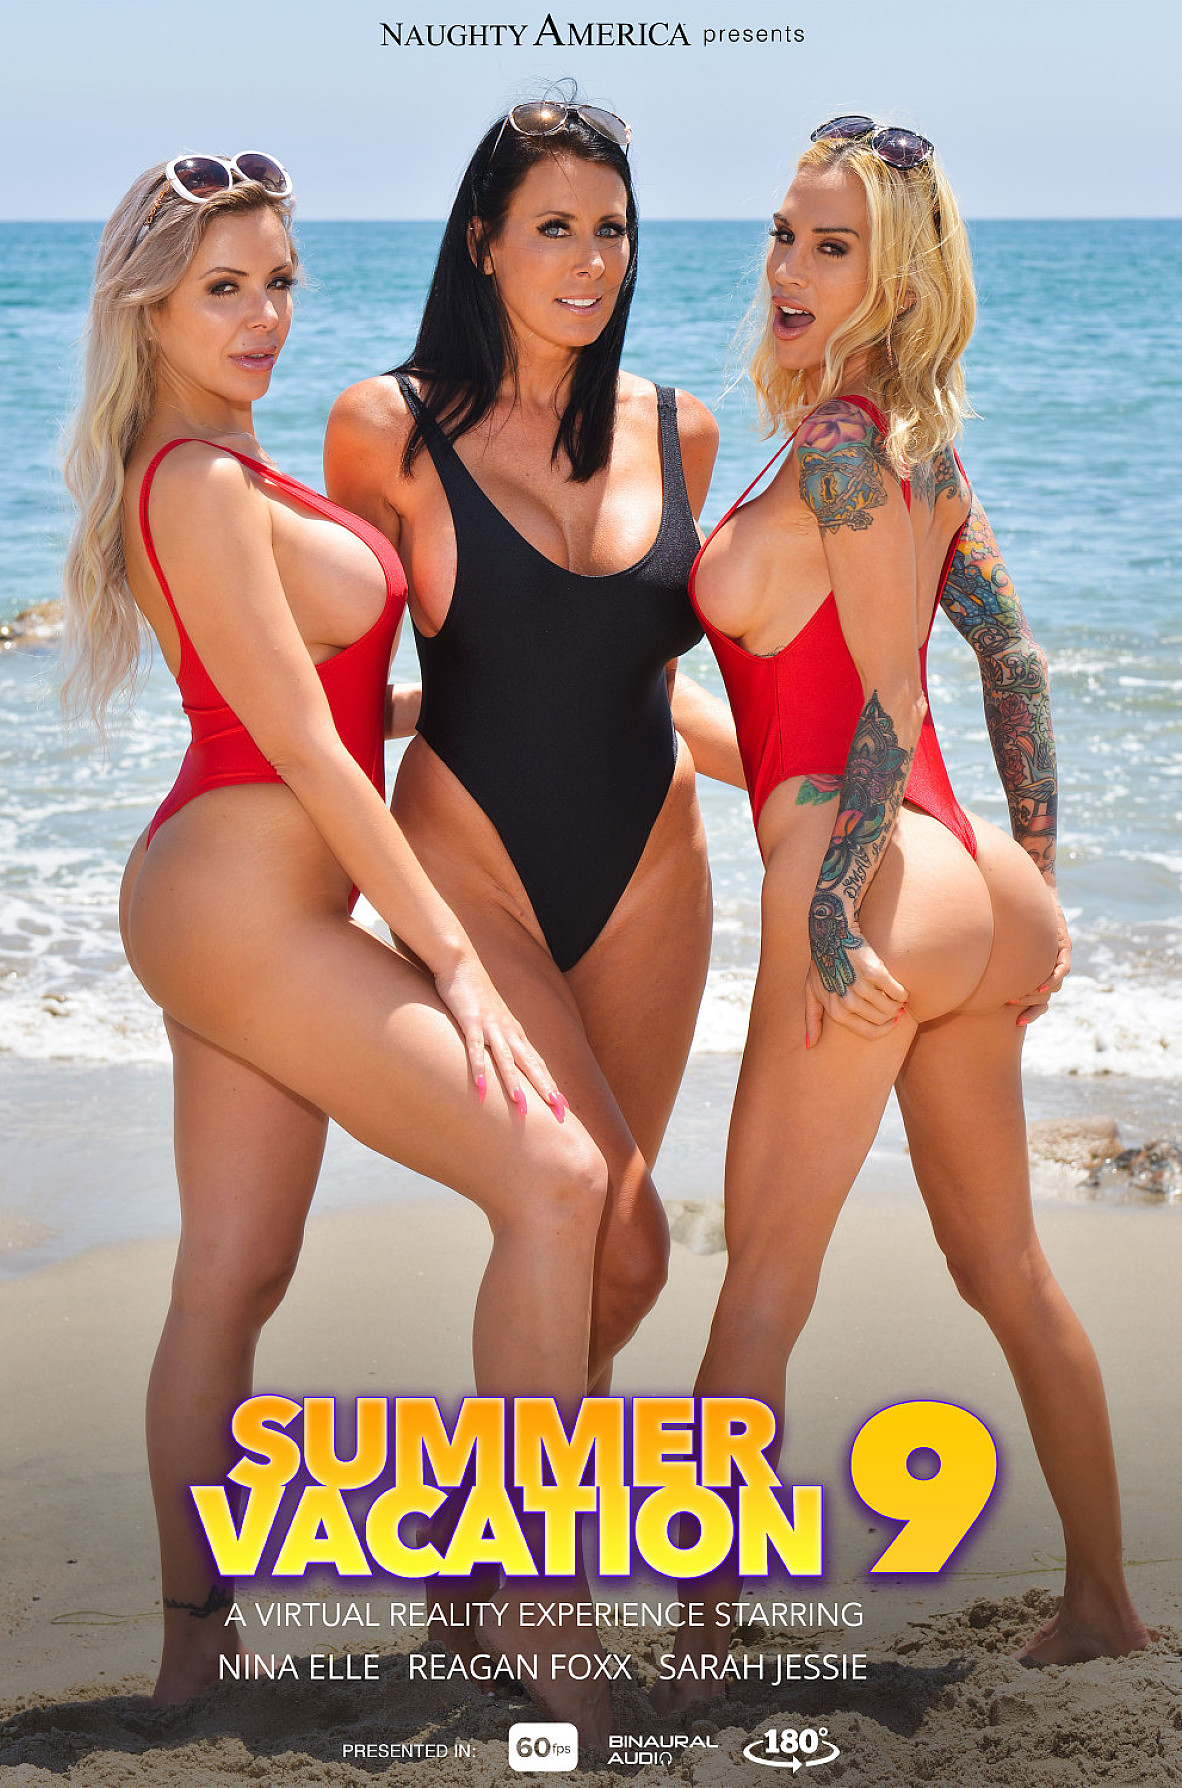 Watch Nina Elle, Reagan Foxx, Sarah Jessie and Justin Hunt VR video in Naughty America